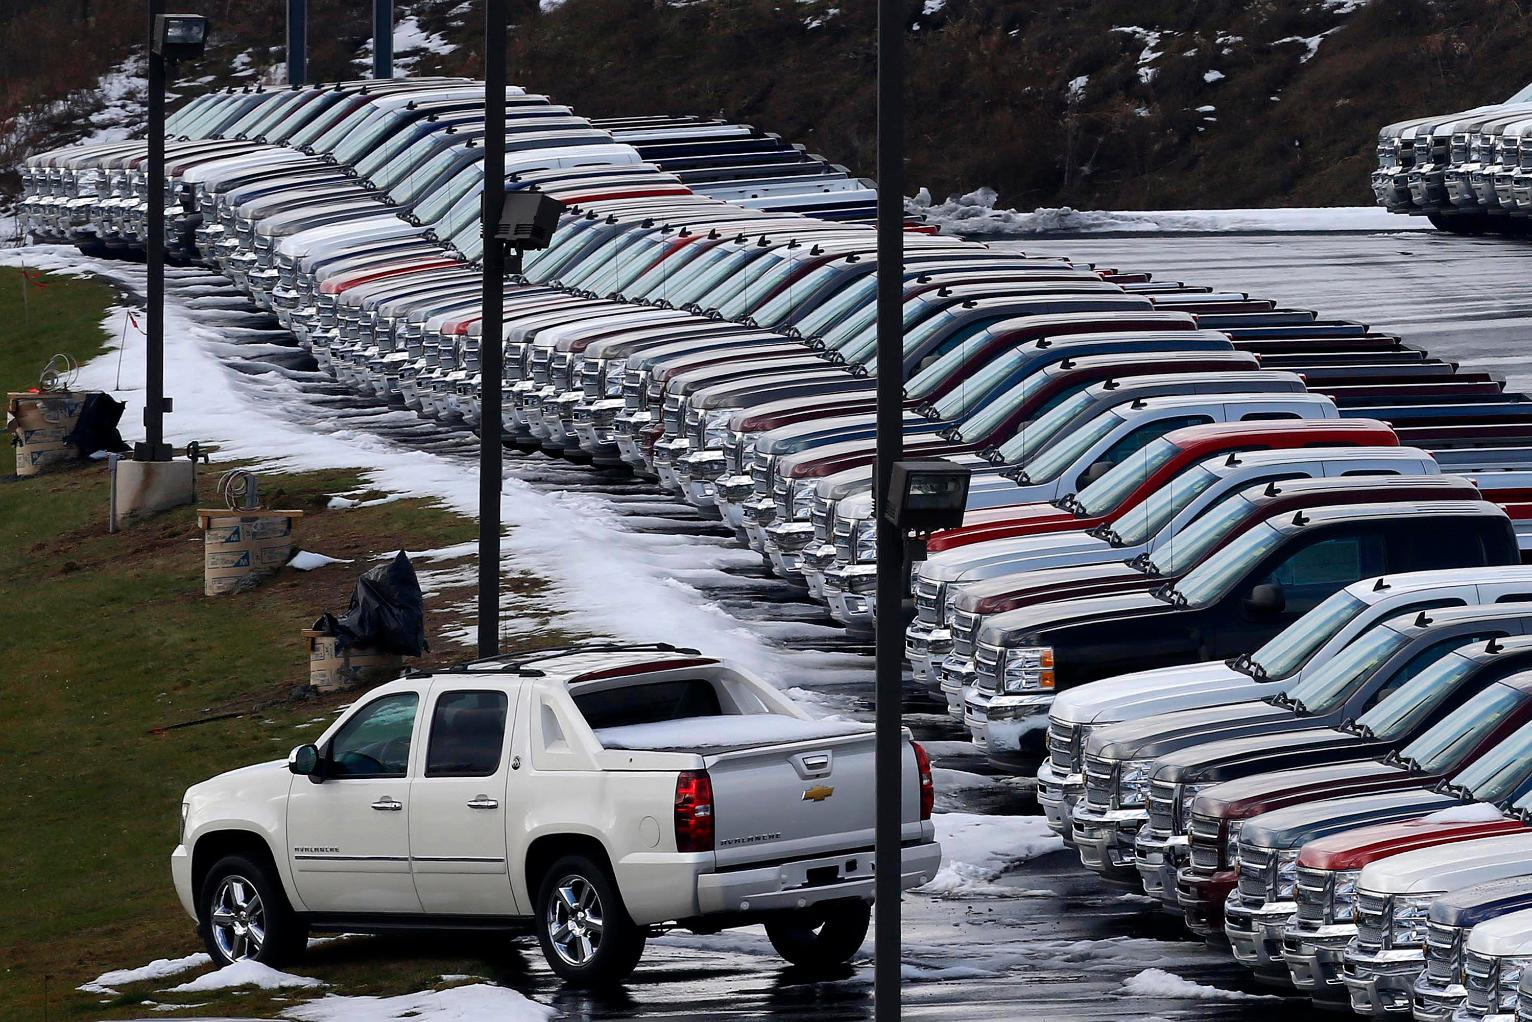 Us auto sales hit a record 17 55m in 2016 led by suvs u s news us news